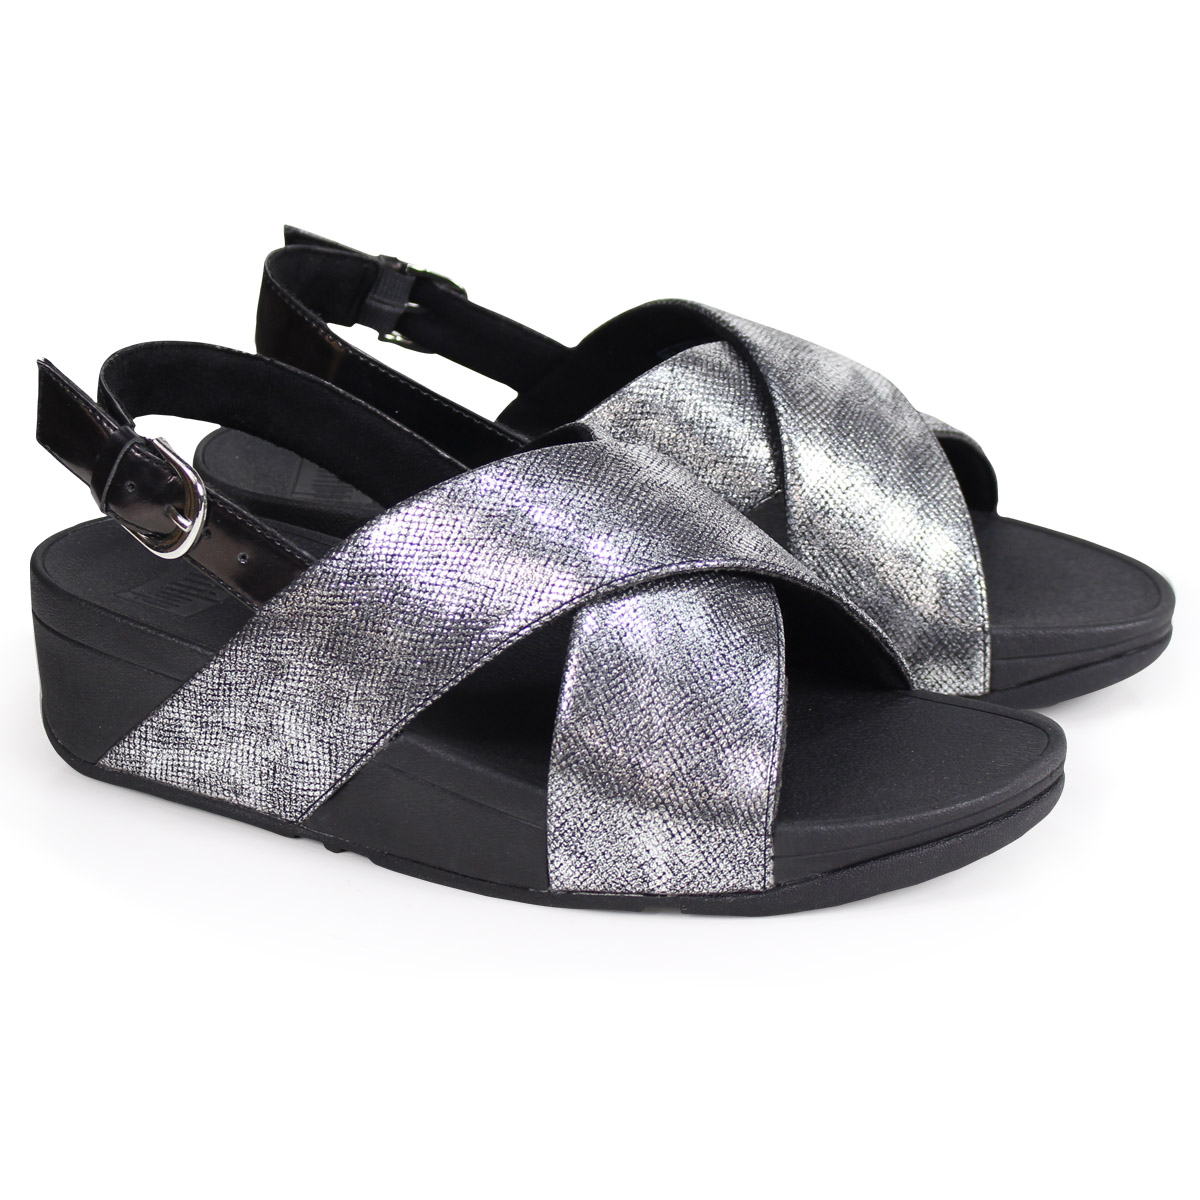 1dbb3e147d8a Whats up Sports  FitFlop LULU CROSS BACK-STRAP SANDALS SHIMMER-PRINT ...